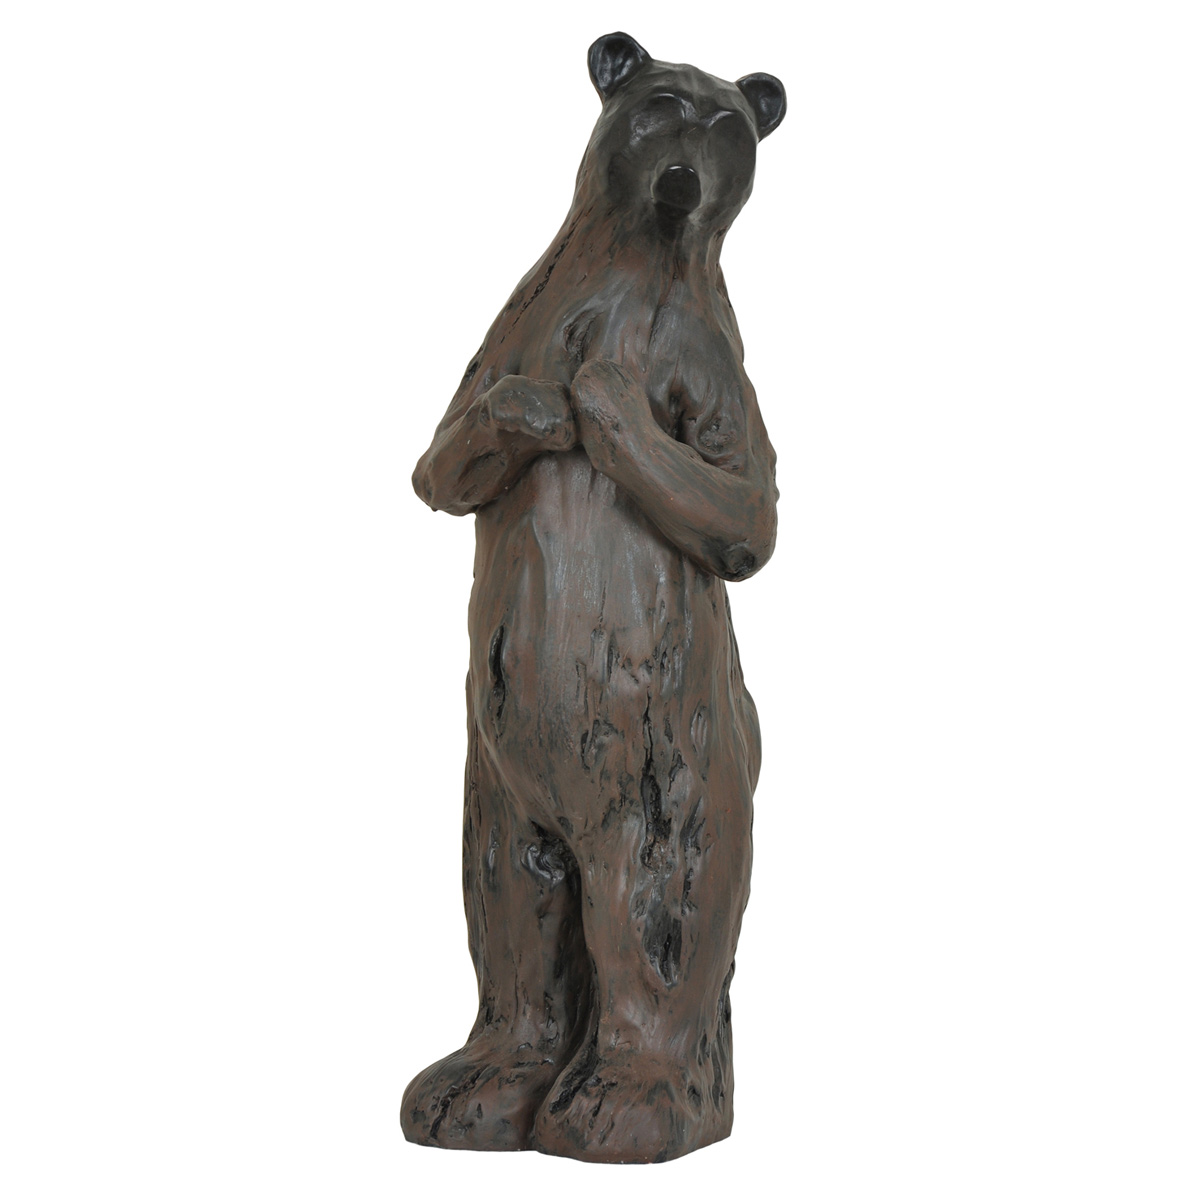 Black Forest Decor Momma bear statue